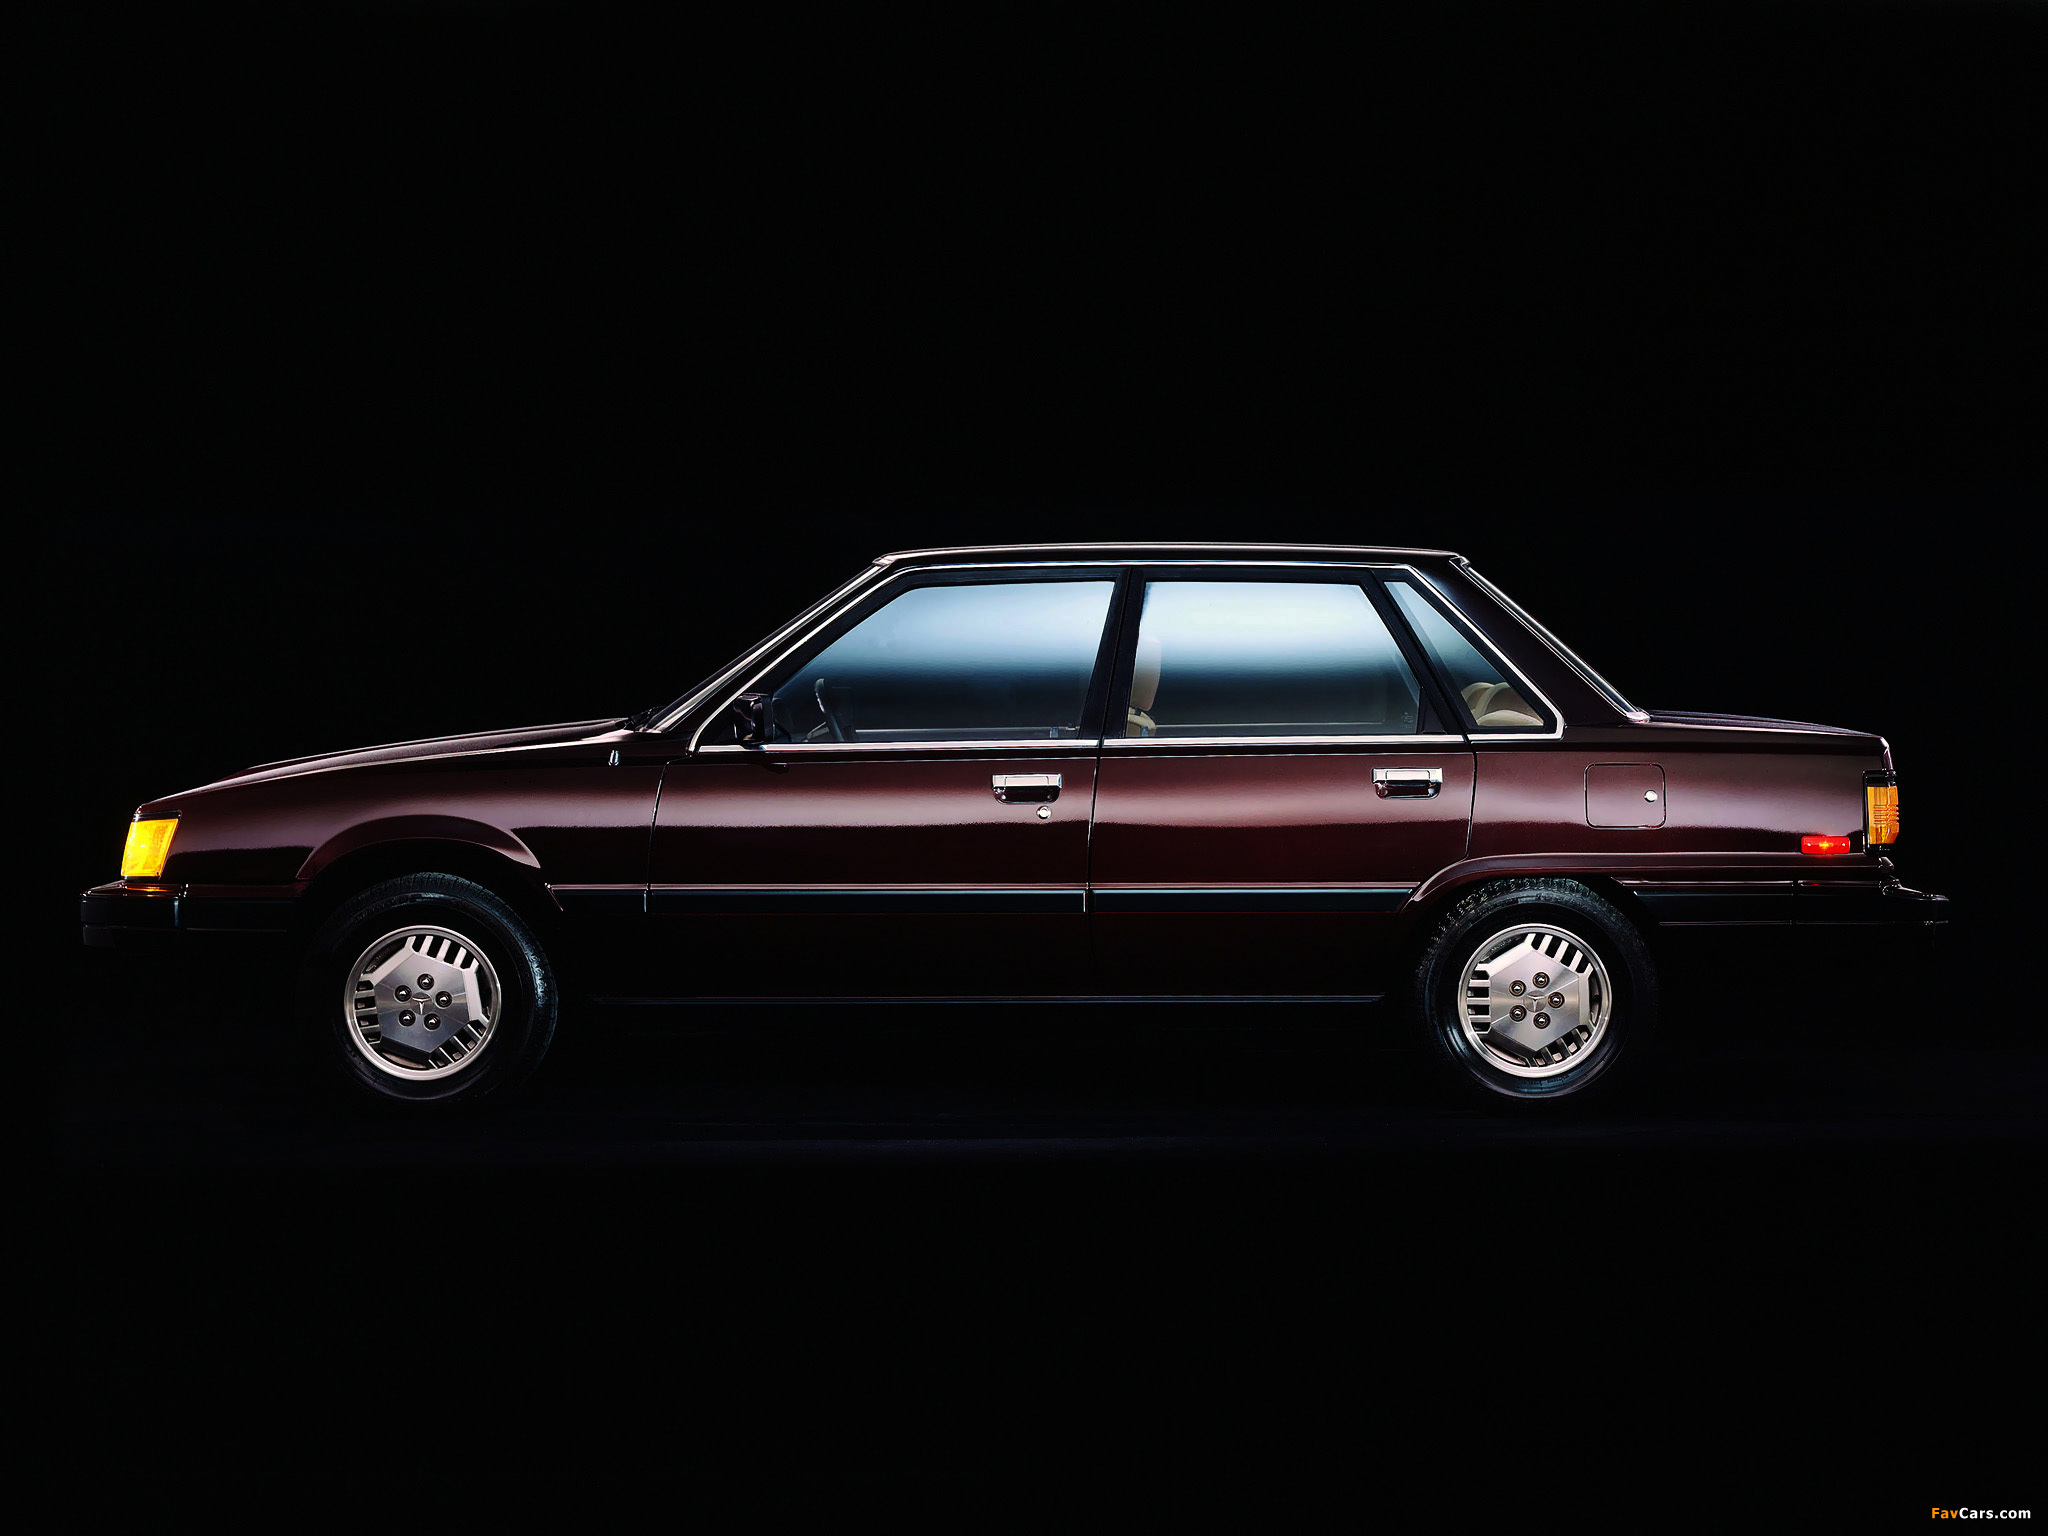 Images Of Toyota Camry Us Spec V10 1982 84 2048x1536